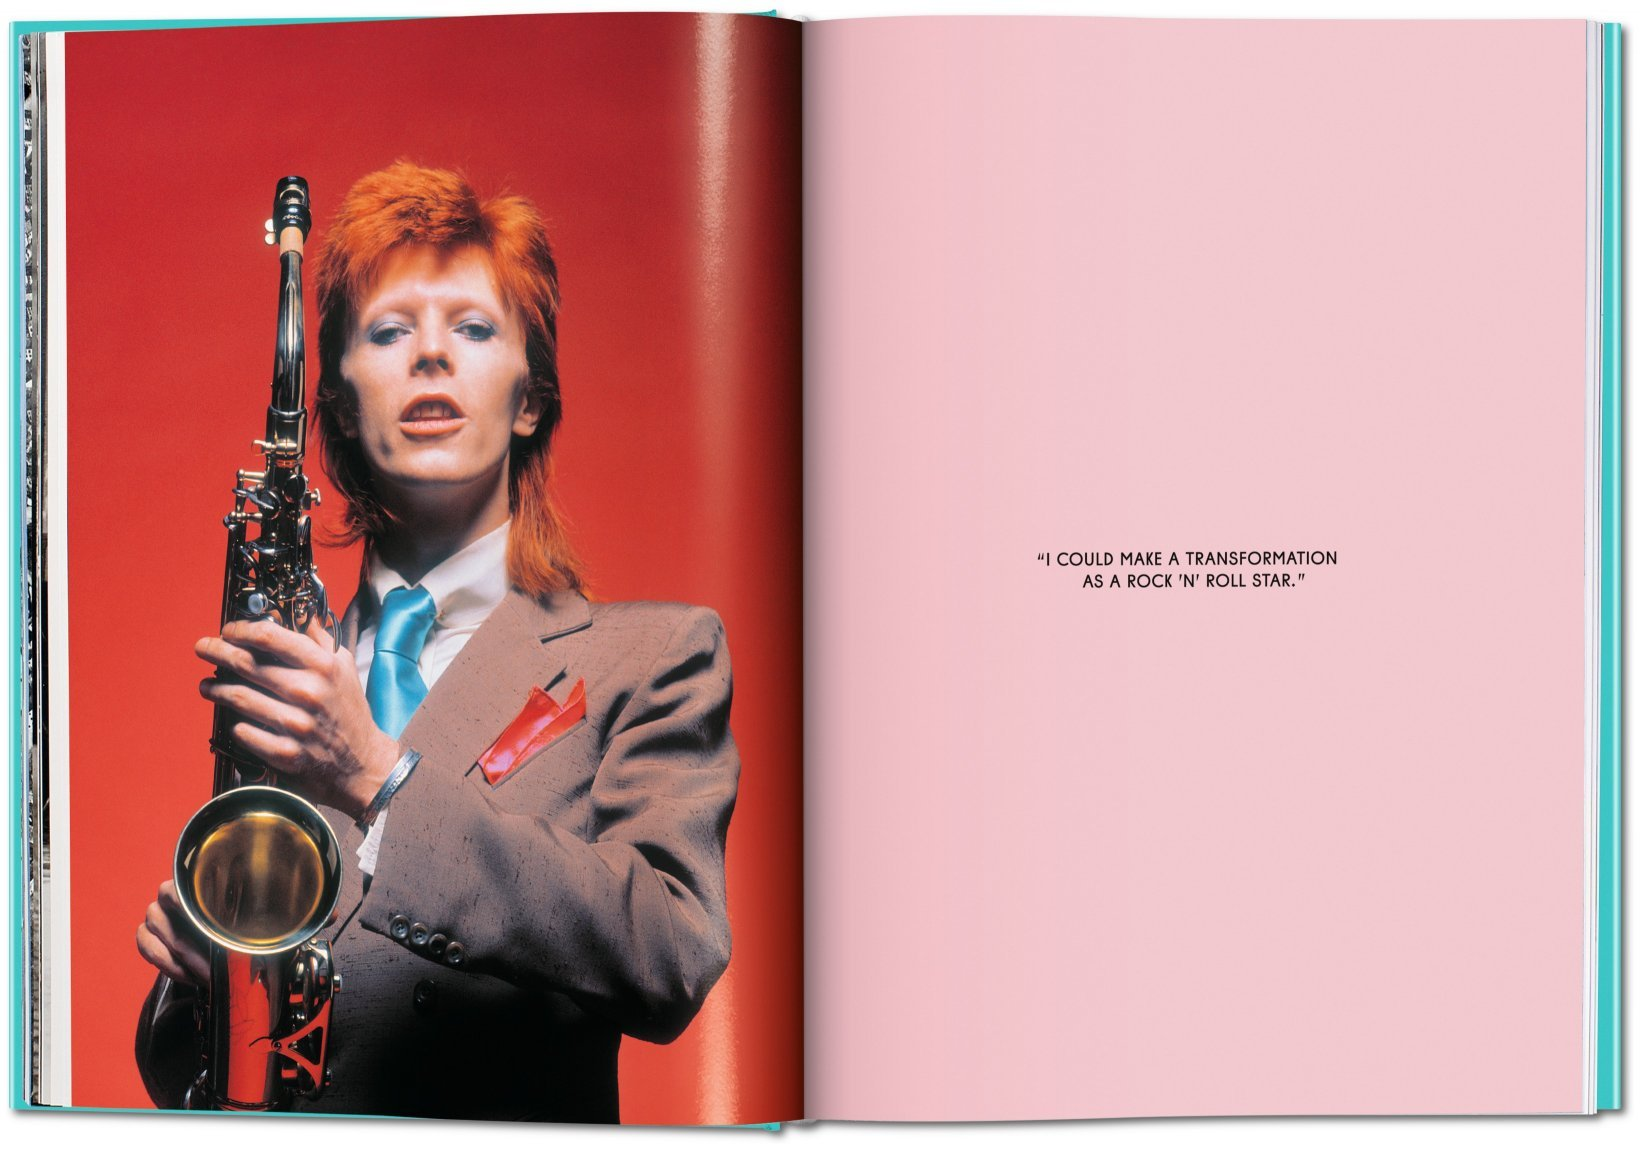 Mick rock the rise of david bowie 1972 1973 multilingual edition mick rock the rise of david bowie 1972 1973 multilingual edition mick rock 9783836560948 amazon books bookmarktalkfo Image collections